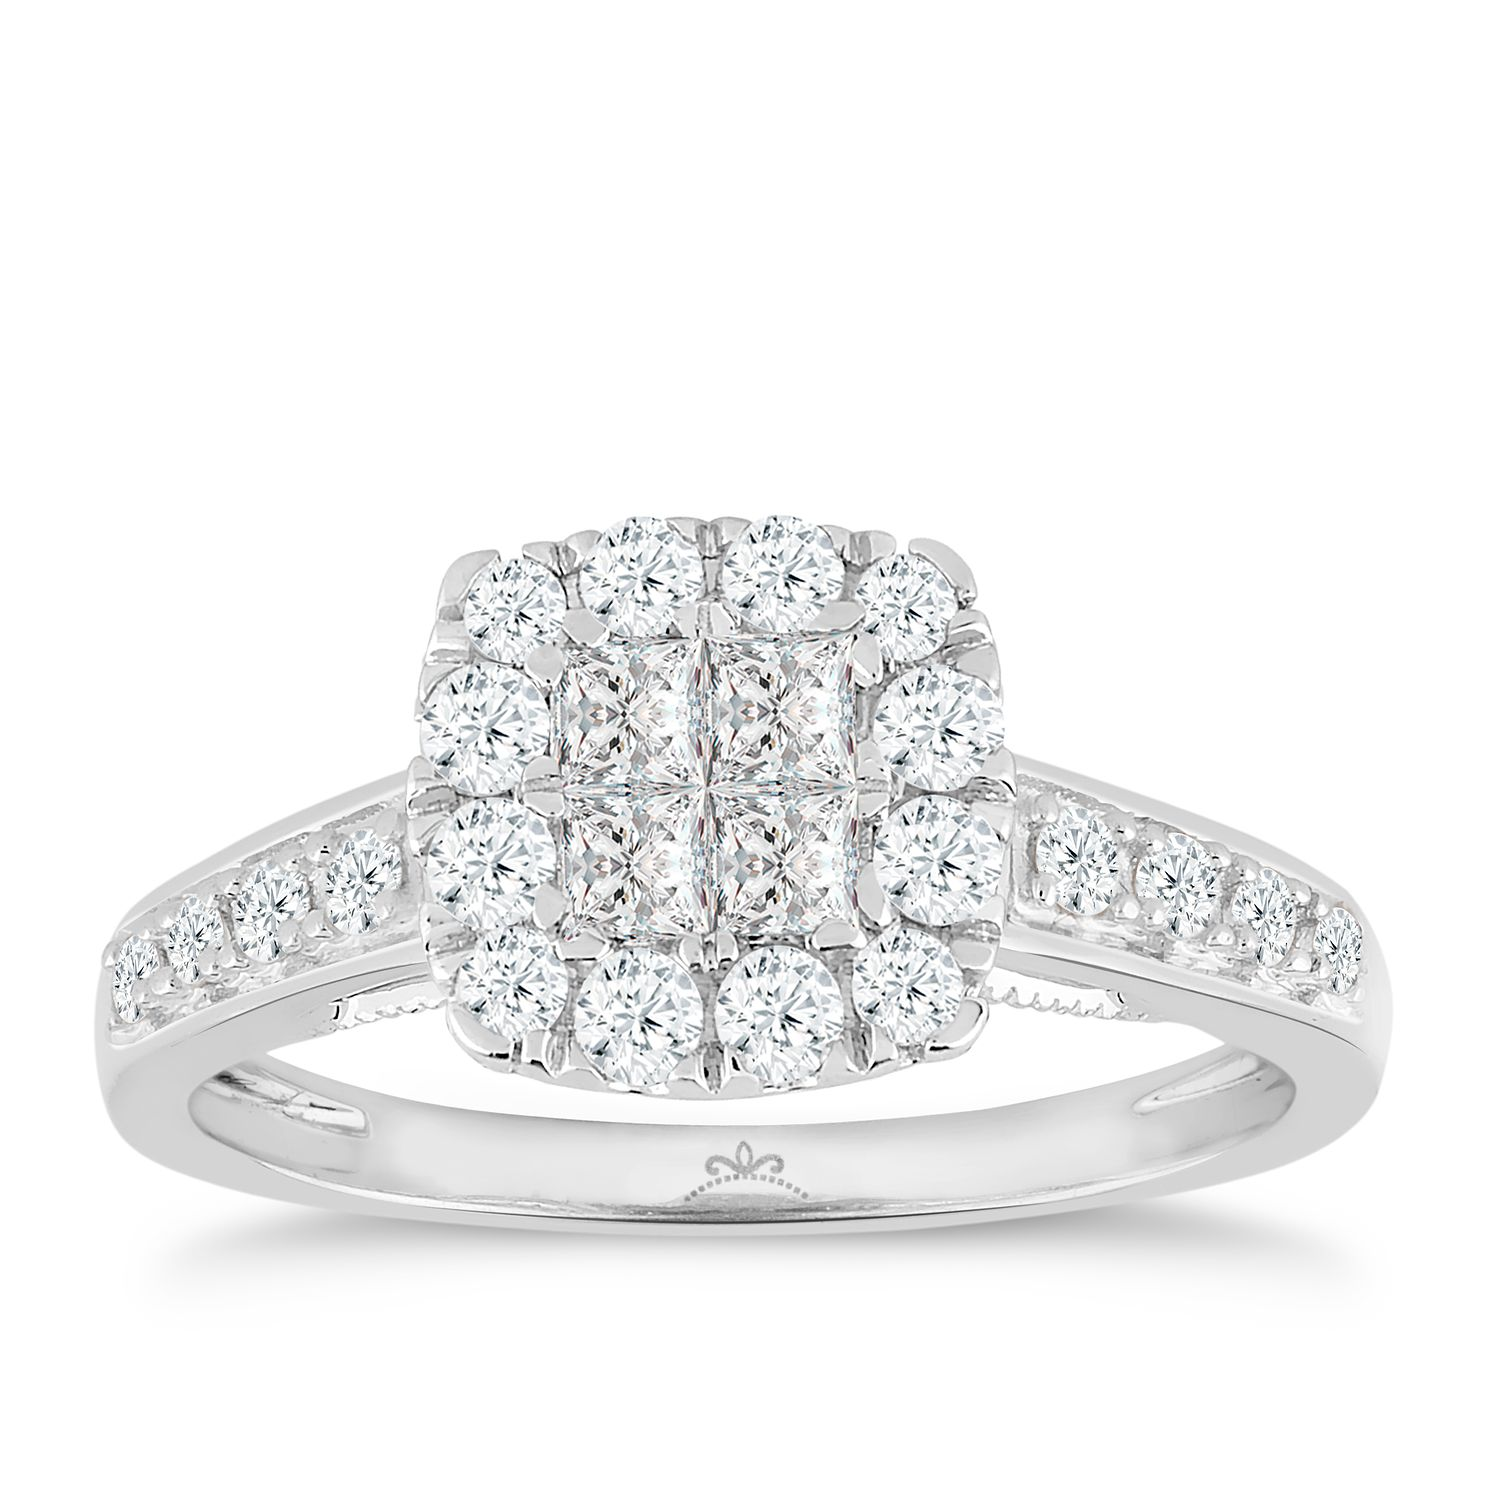 Princessa 18ct White Gold 2/3ct Diamond Square Cluster Ring - Product number 5263301